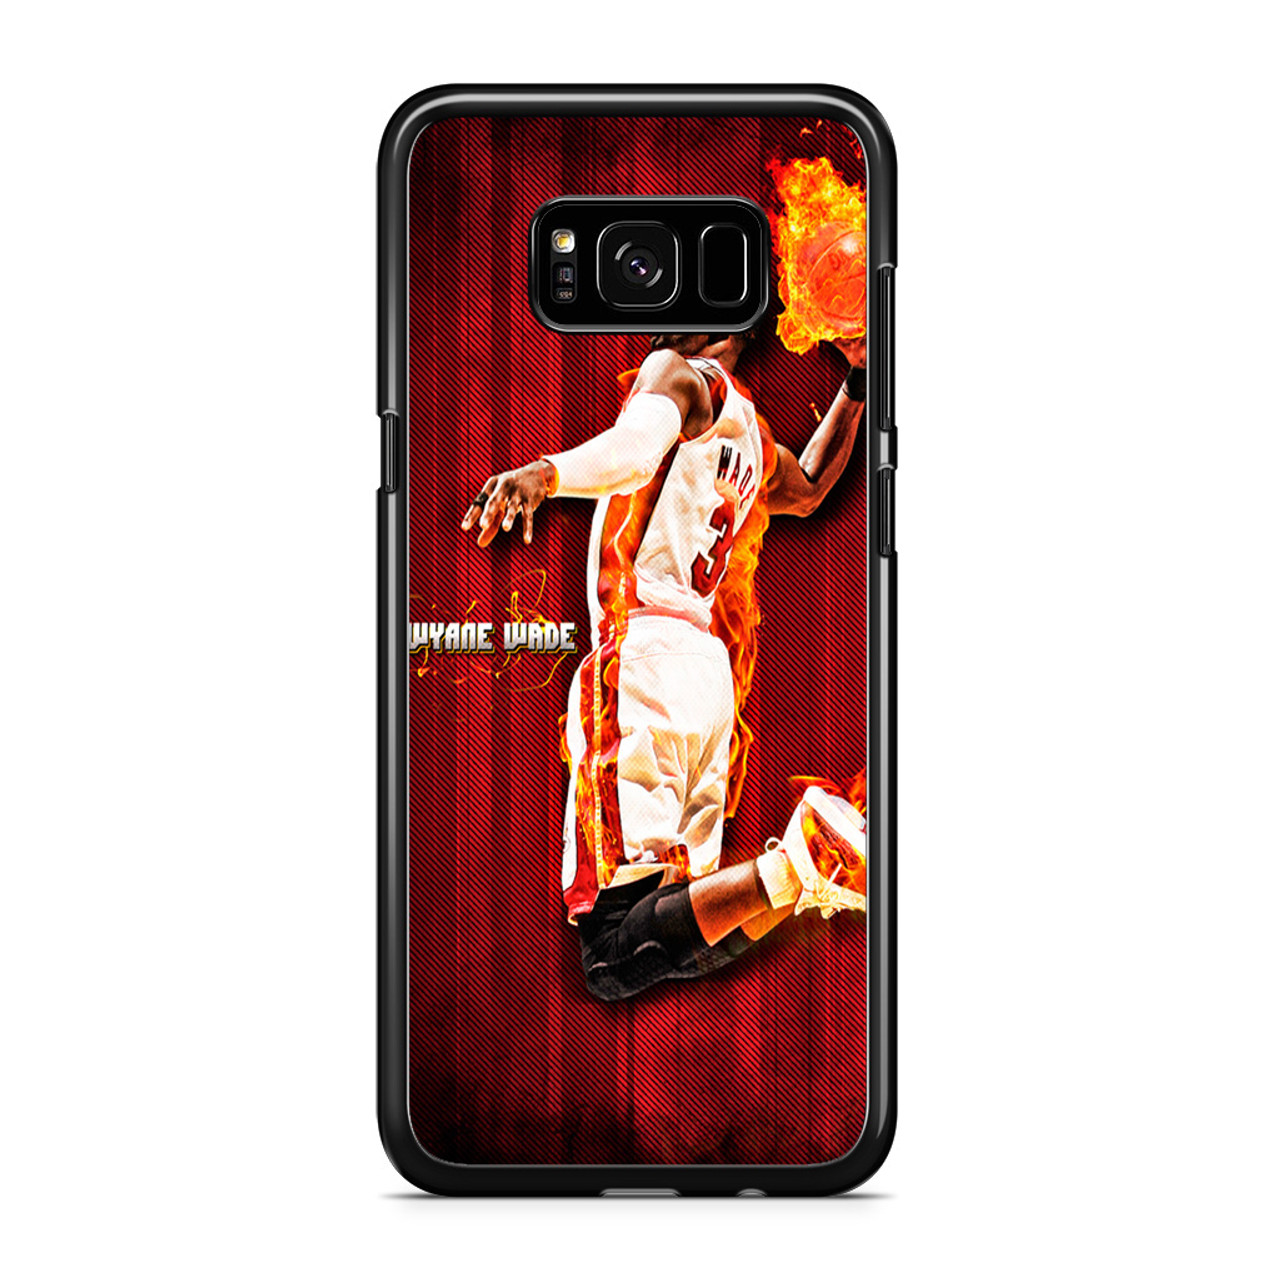 72def3e6e Miami Heat Dwyane Wade Samsung Galaxy S8 Plus Case - CASESHUNTER